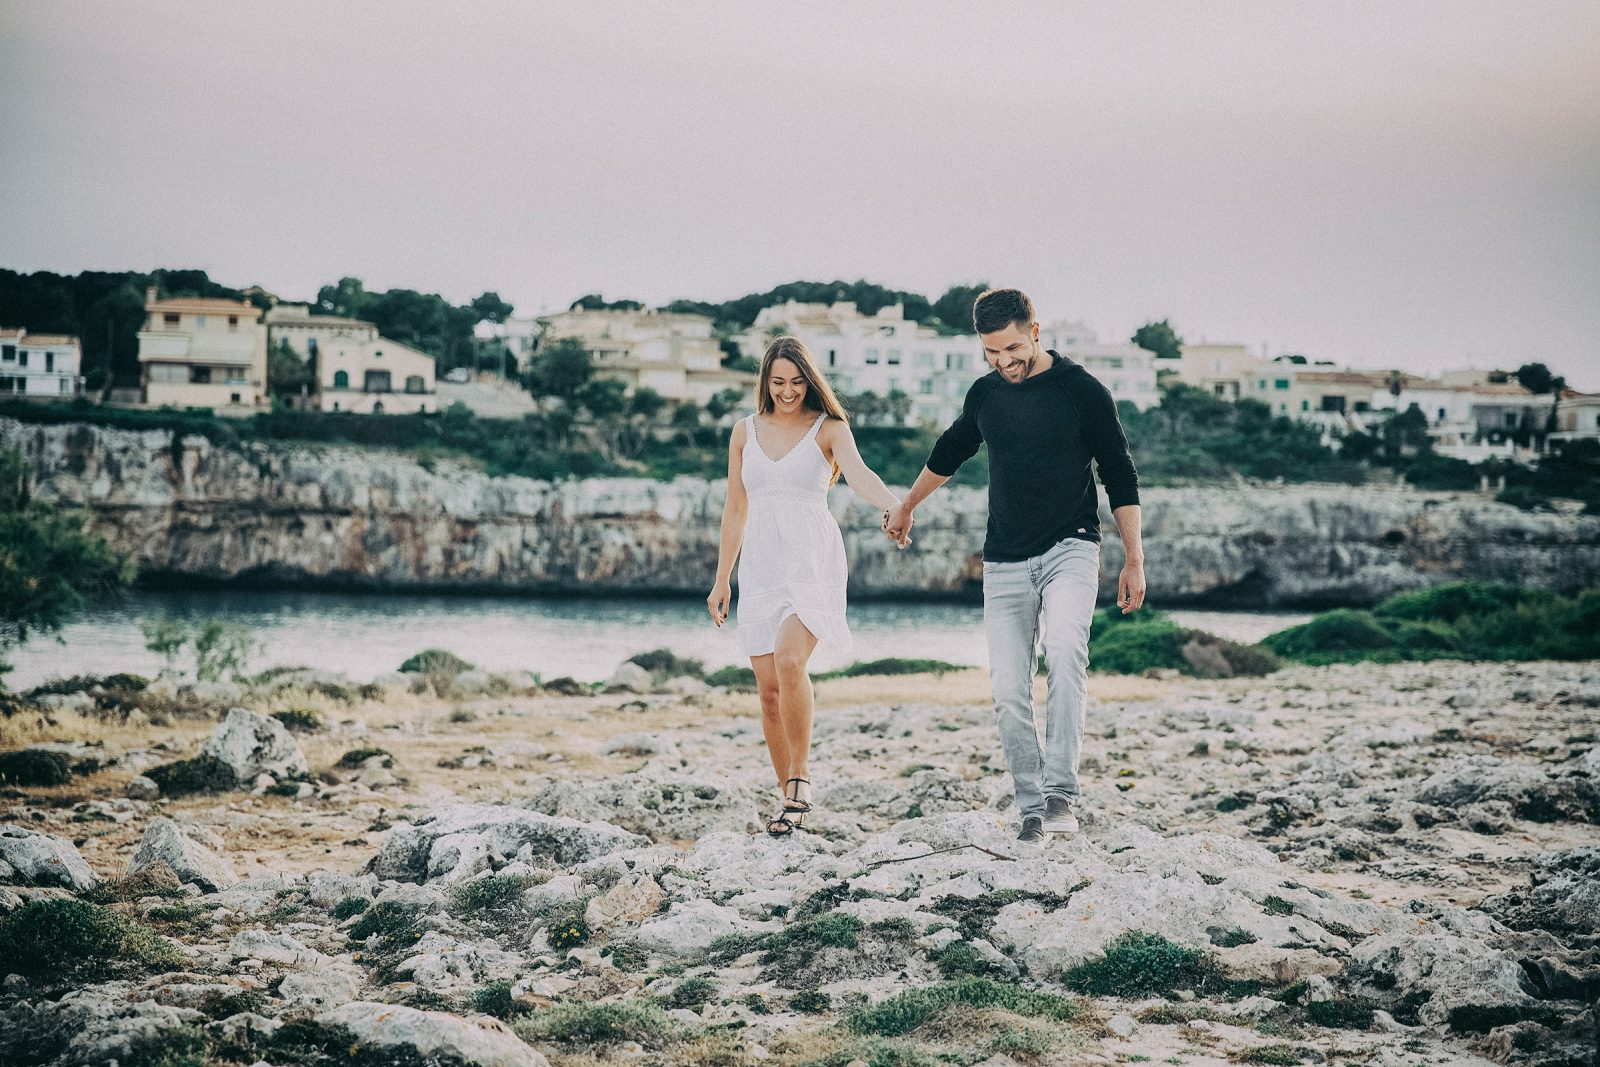 Fotoshooting_Mallorca_Lovestories_G3